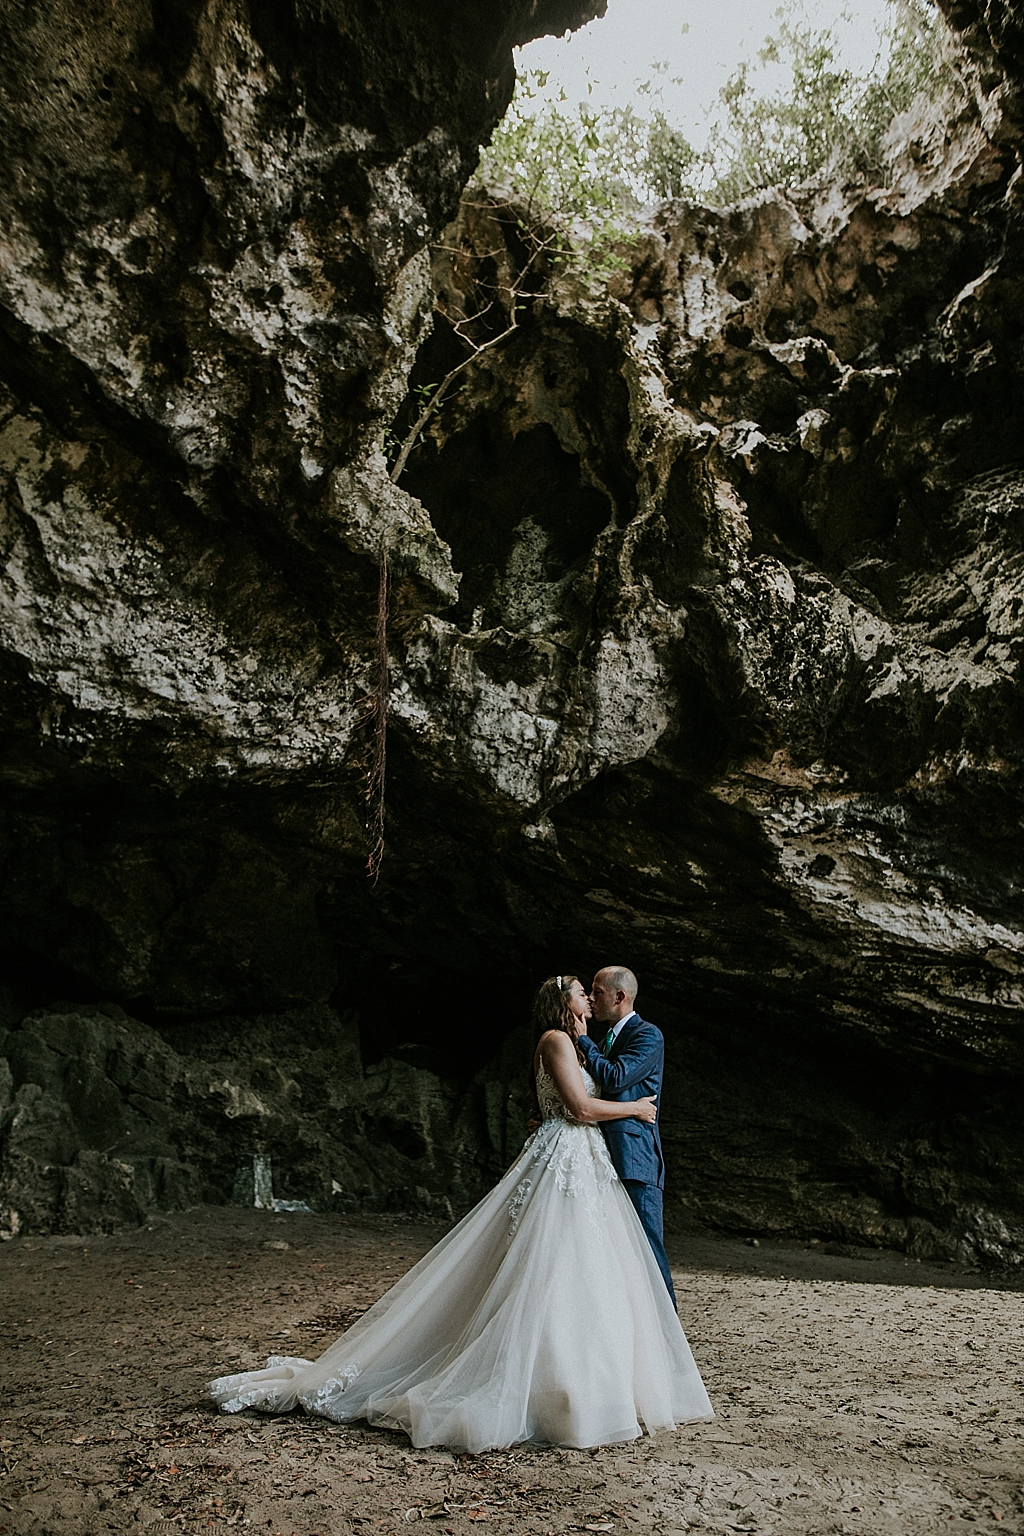 Wedding portraits in a cave